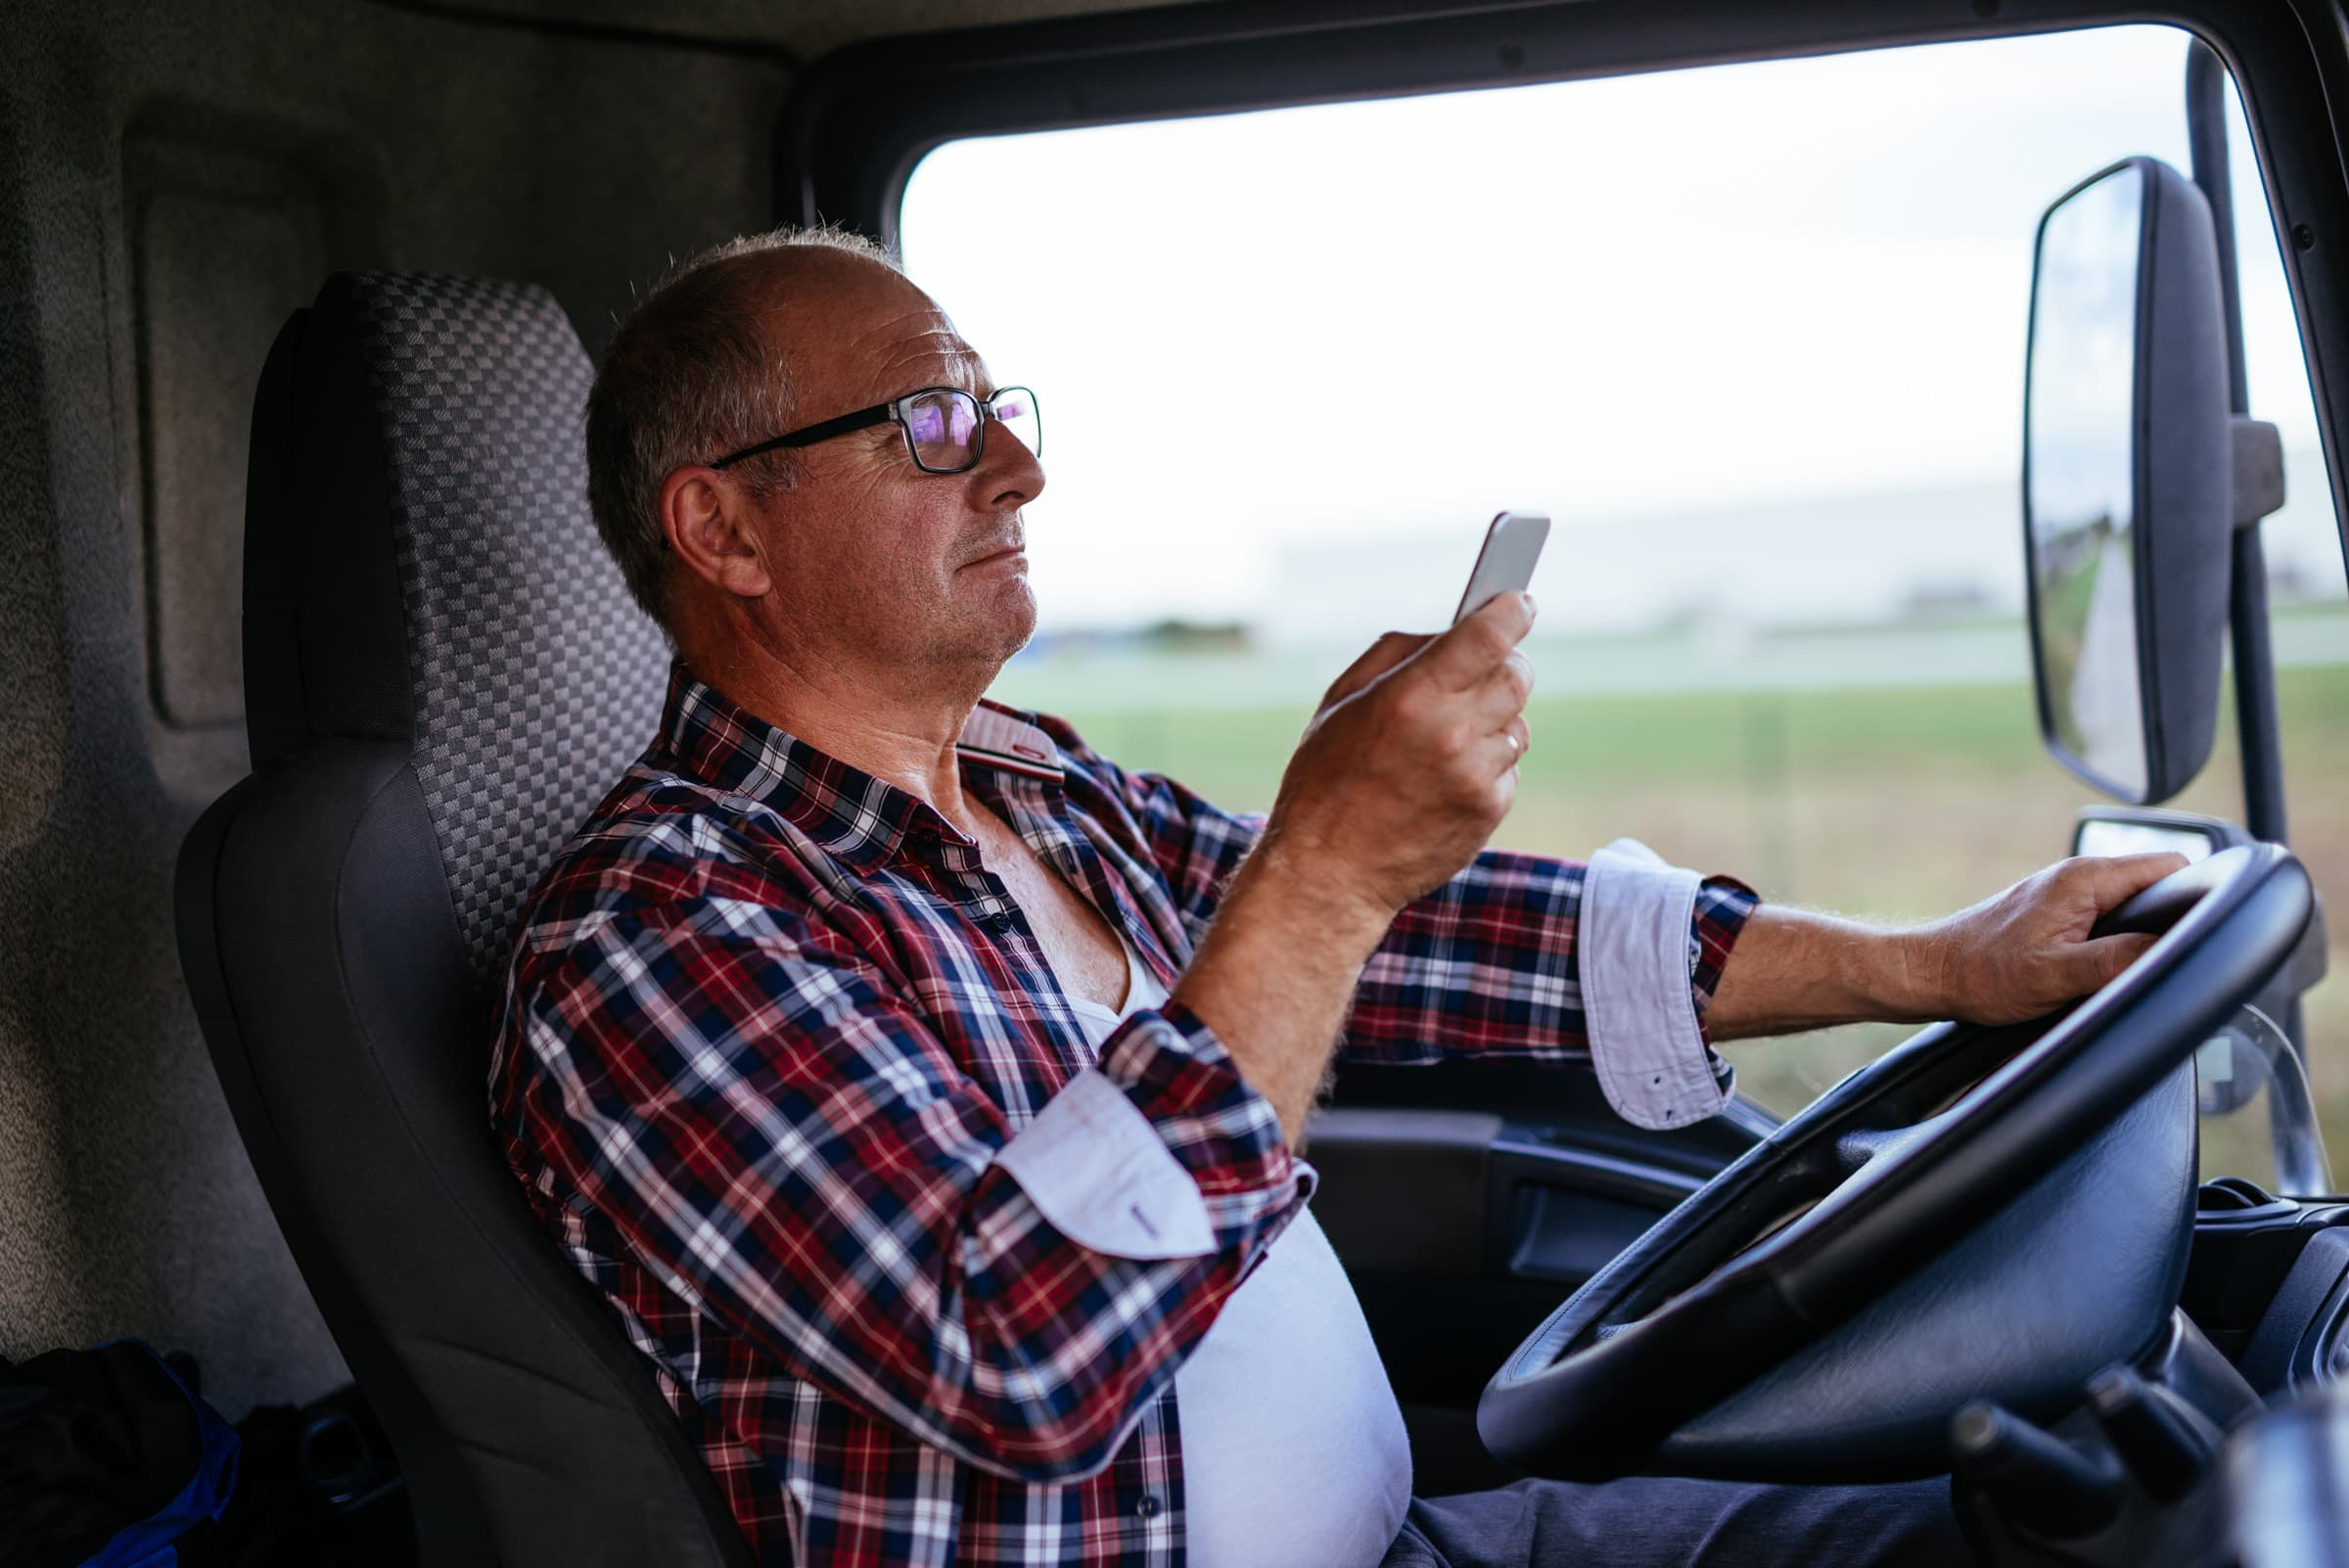 Truck-Driver-Looking-At-Phone-While-Driving